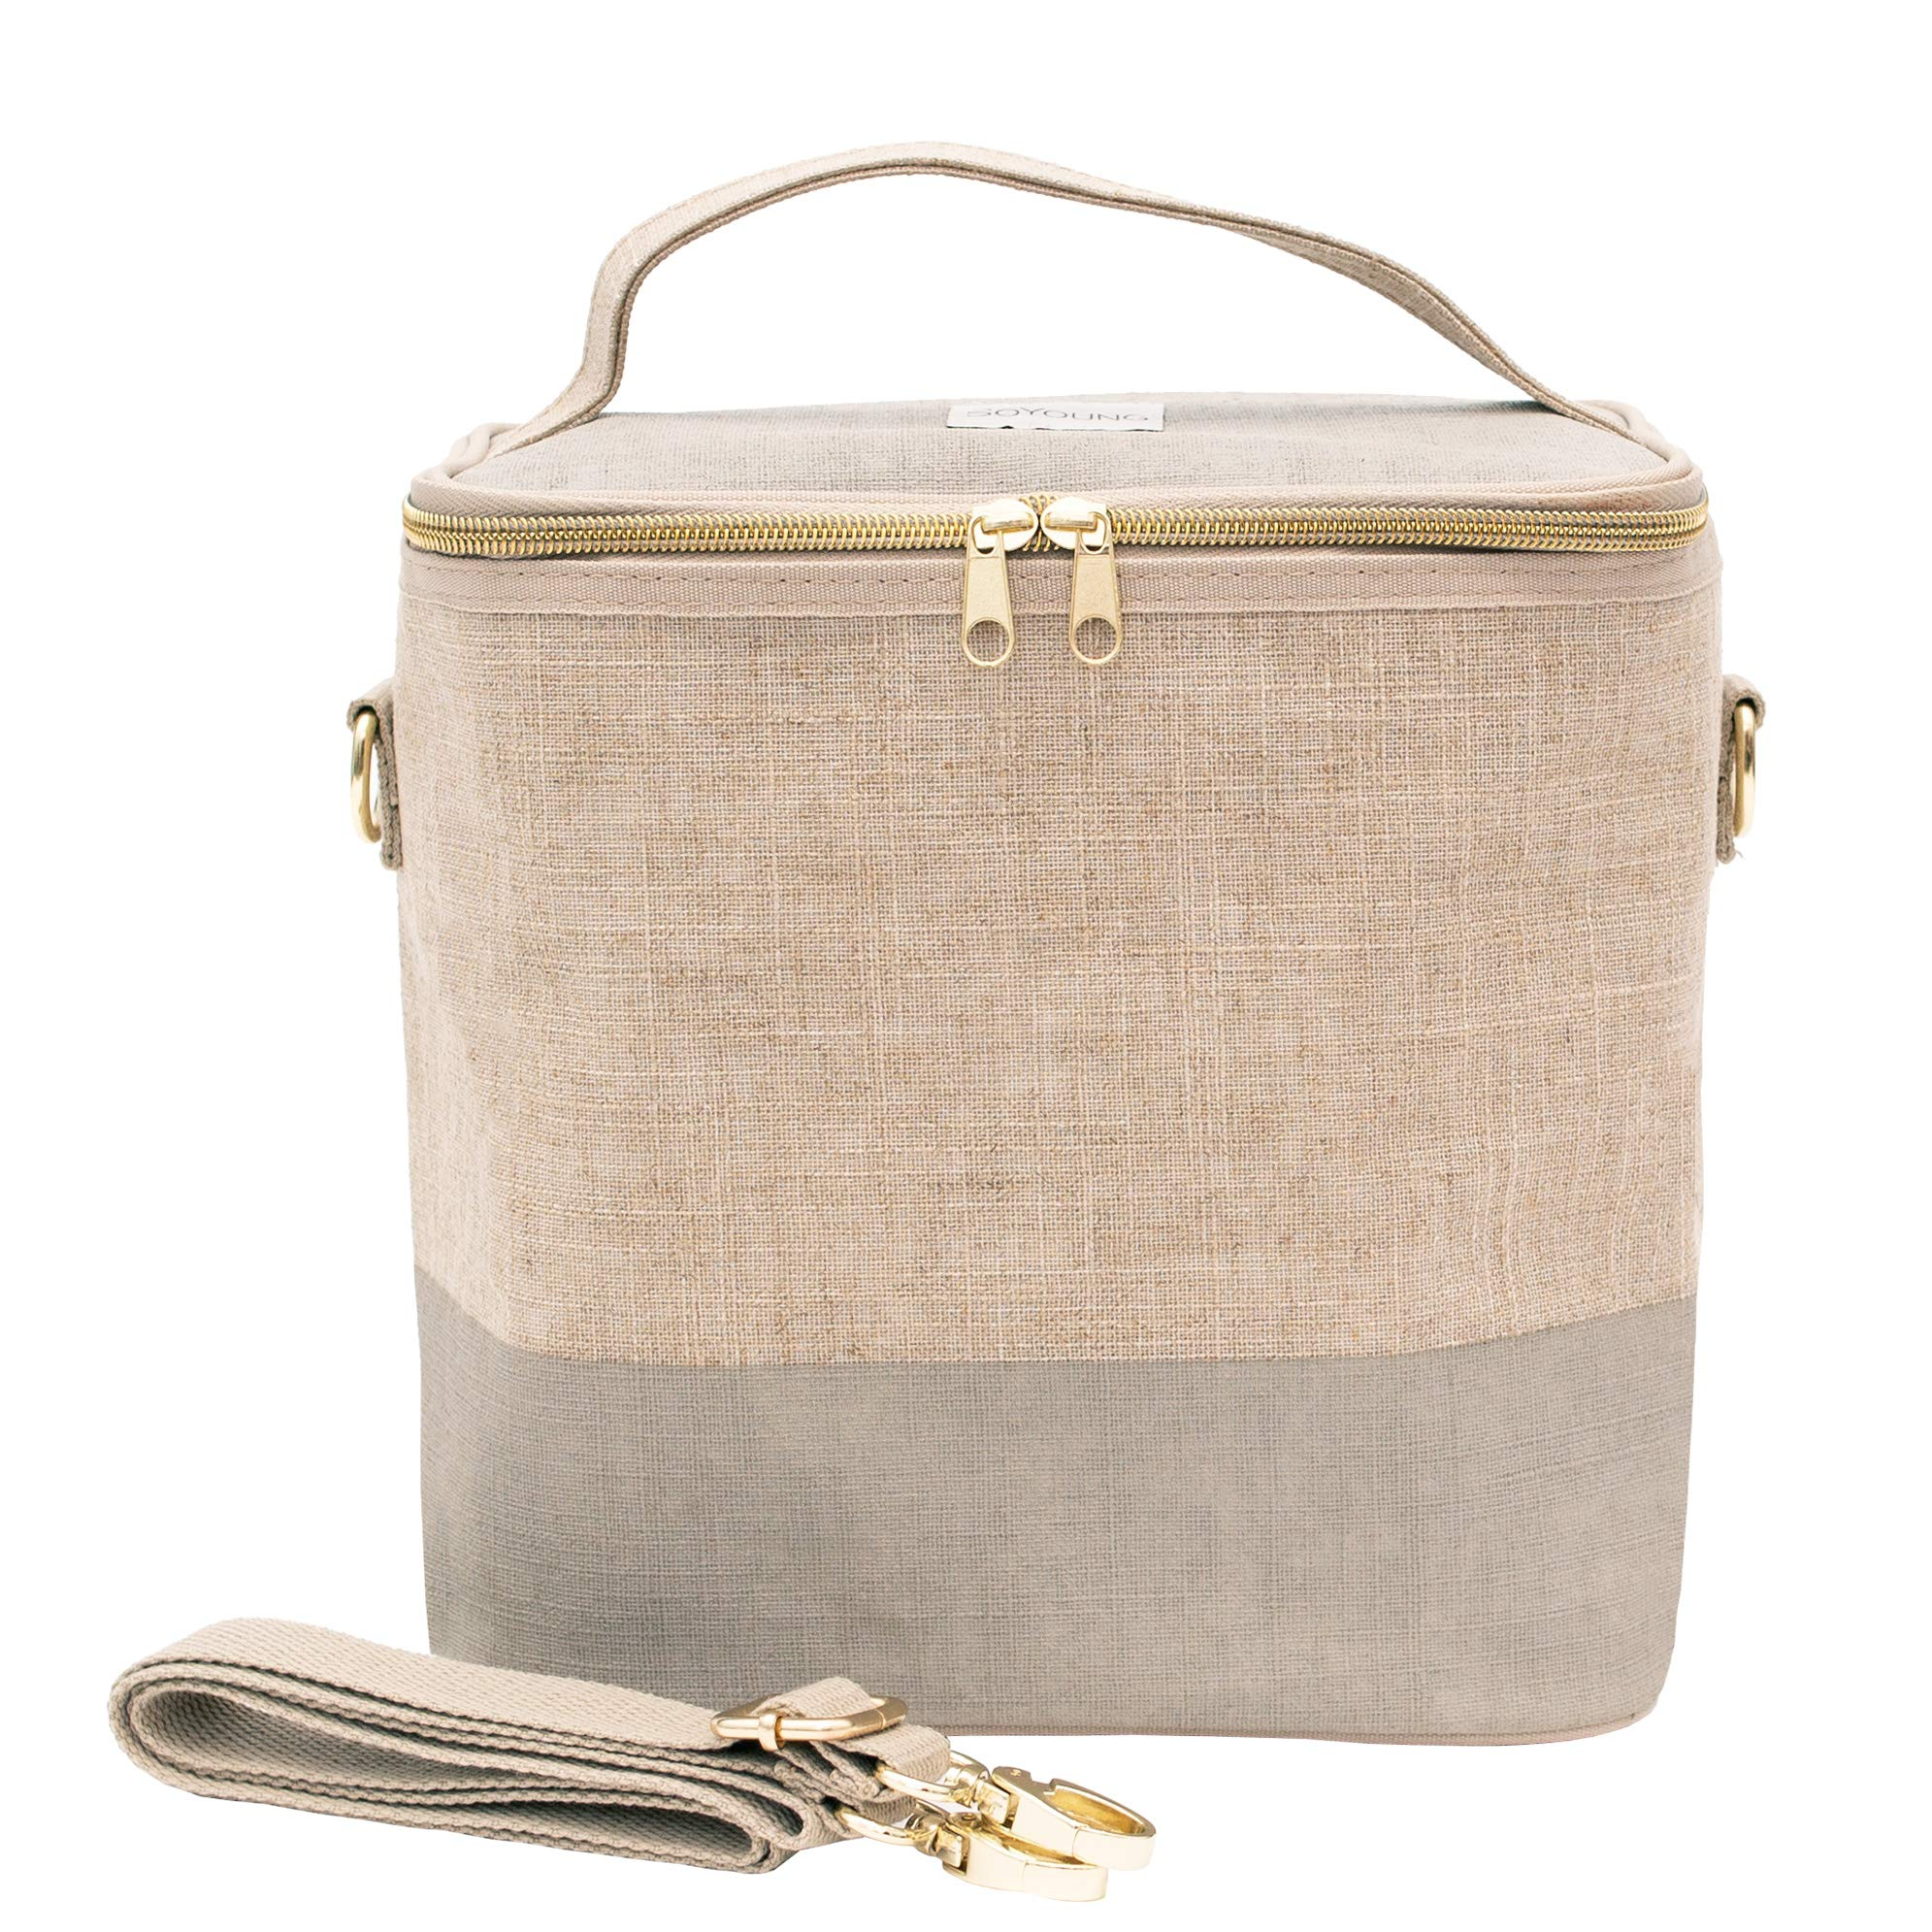 SoYoung Lunch Poche - Adult Lunch, Raw Linen, Eco-Friendly, Modern and Easy to Clean - Linen-Cement by SoYoung